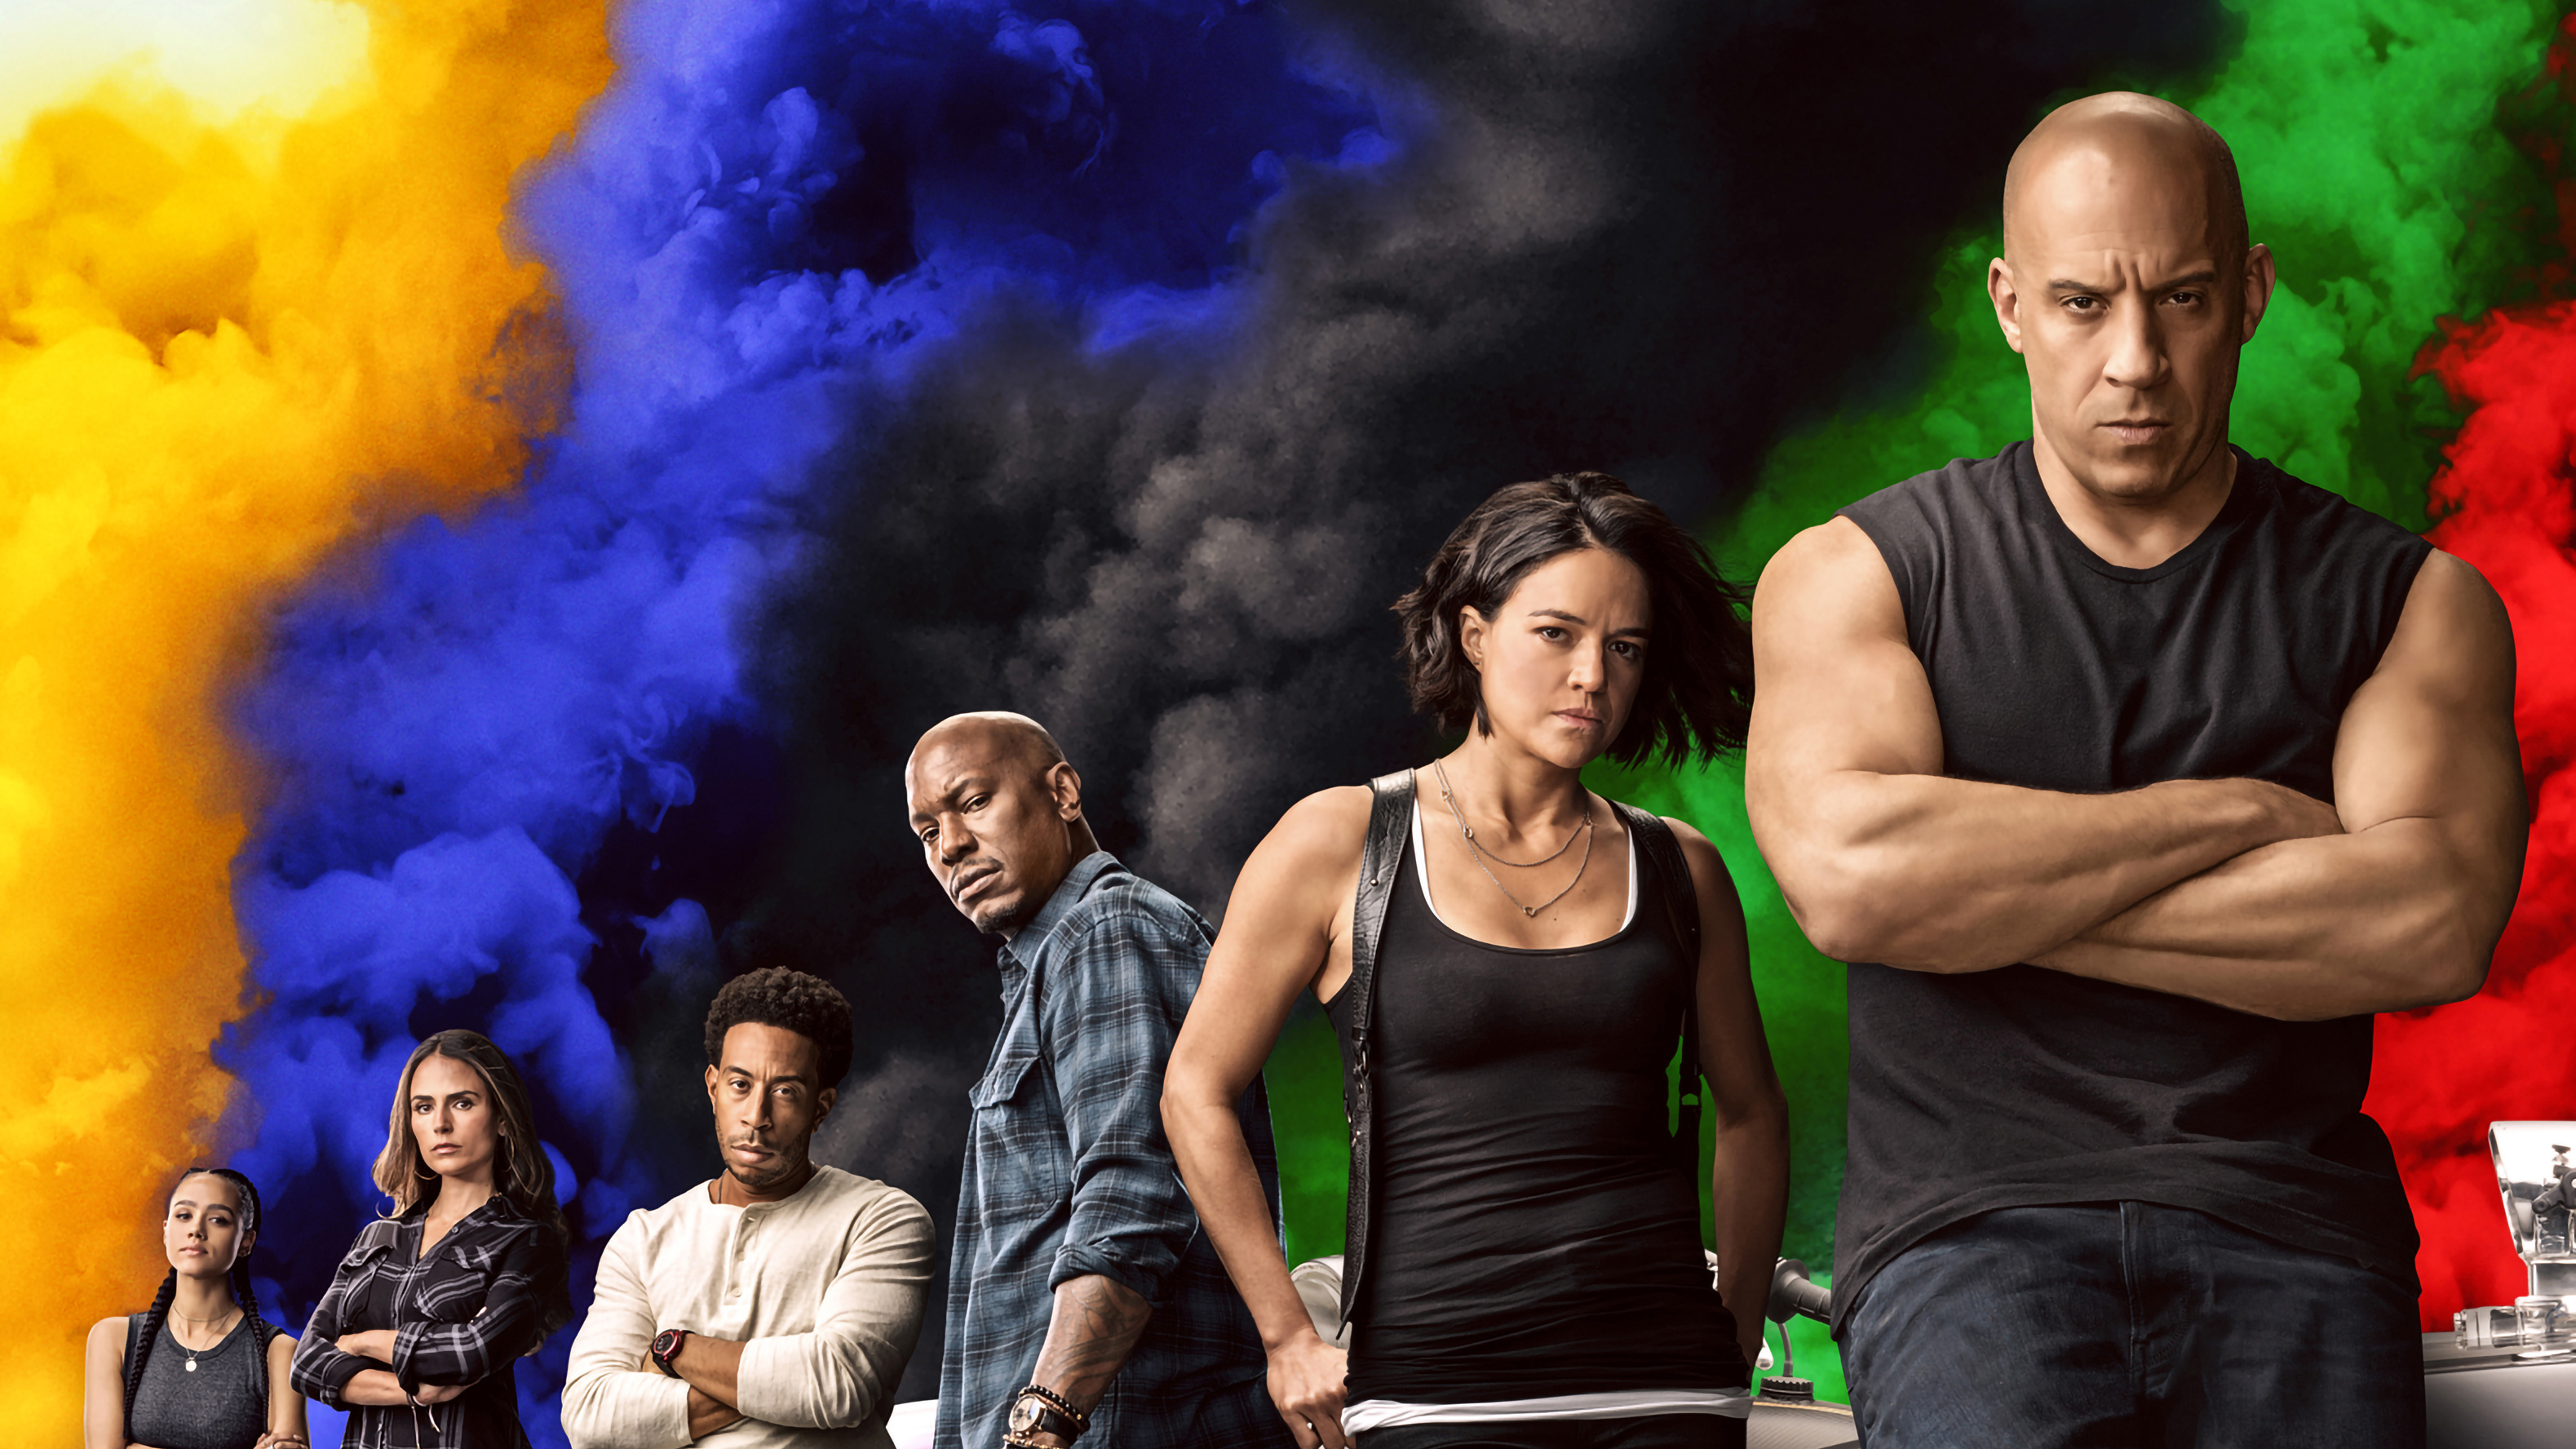 Wallpaper Characters from Fast and Furious 9